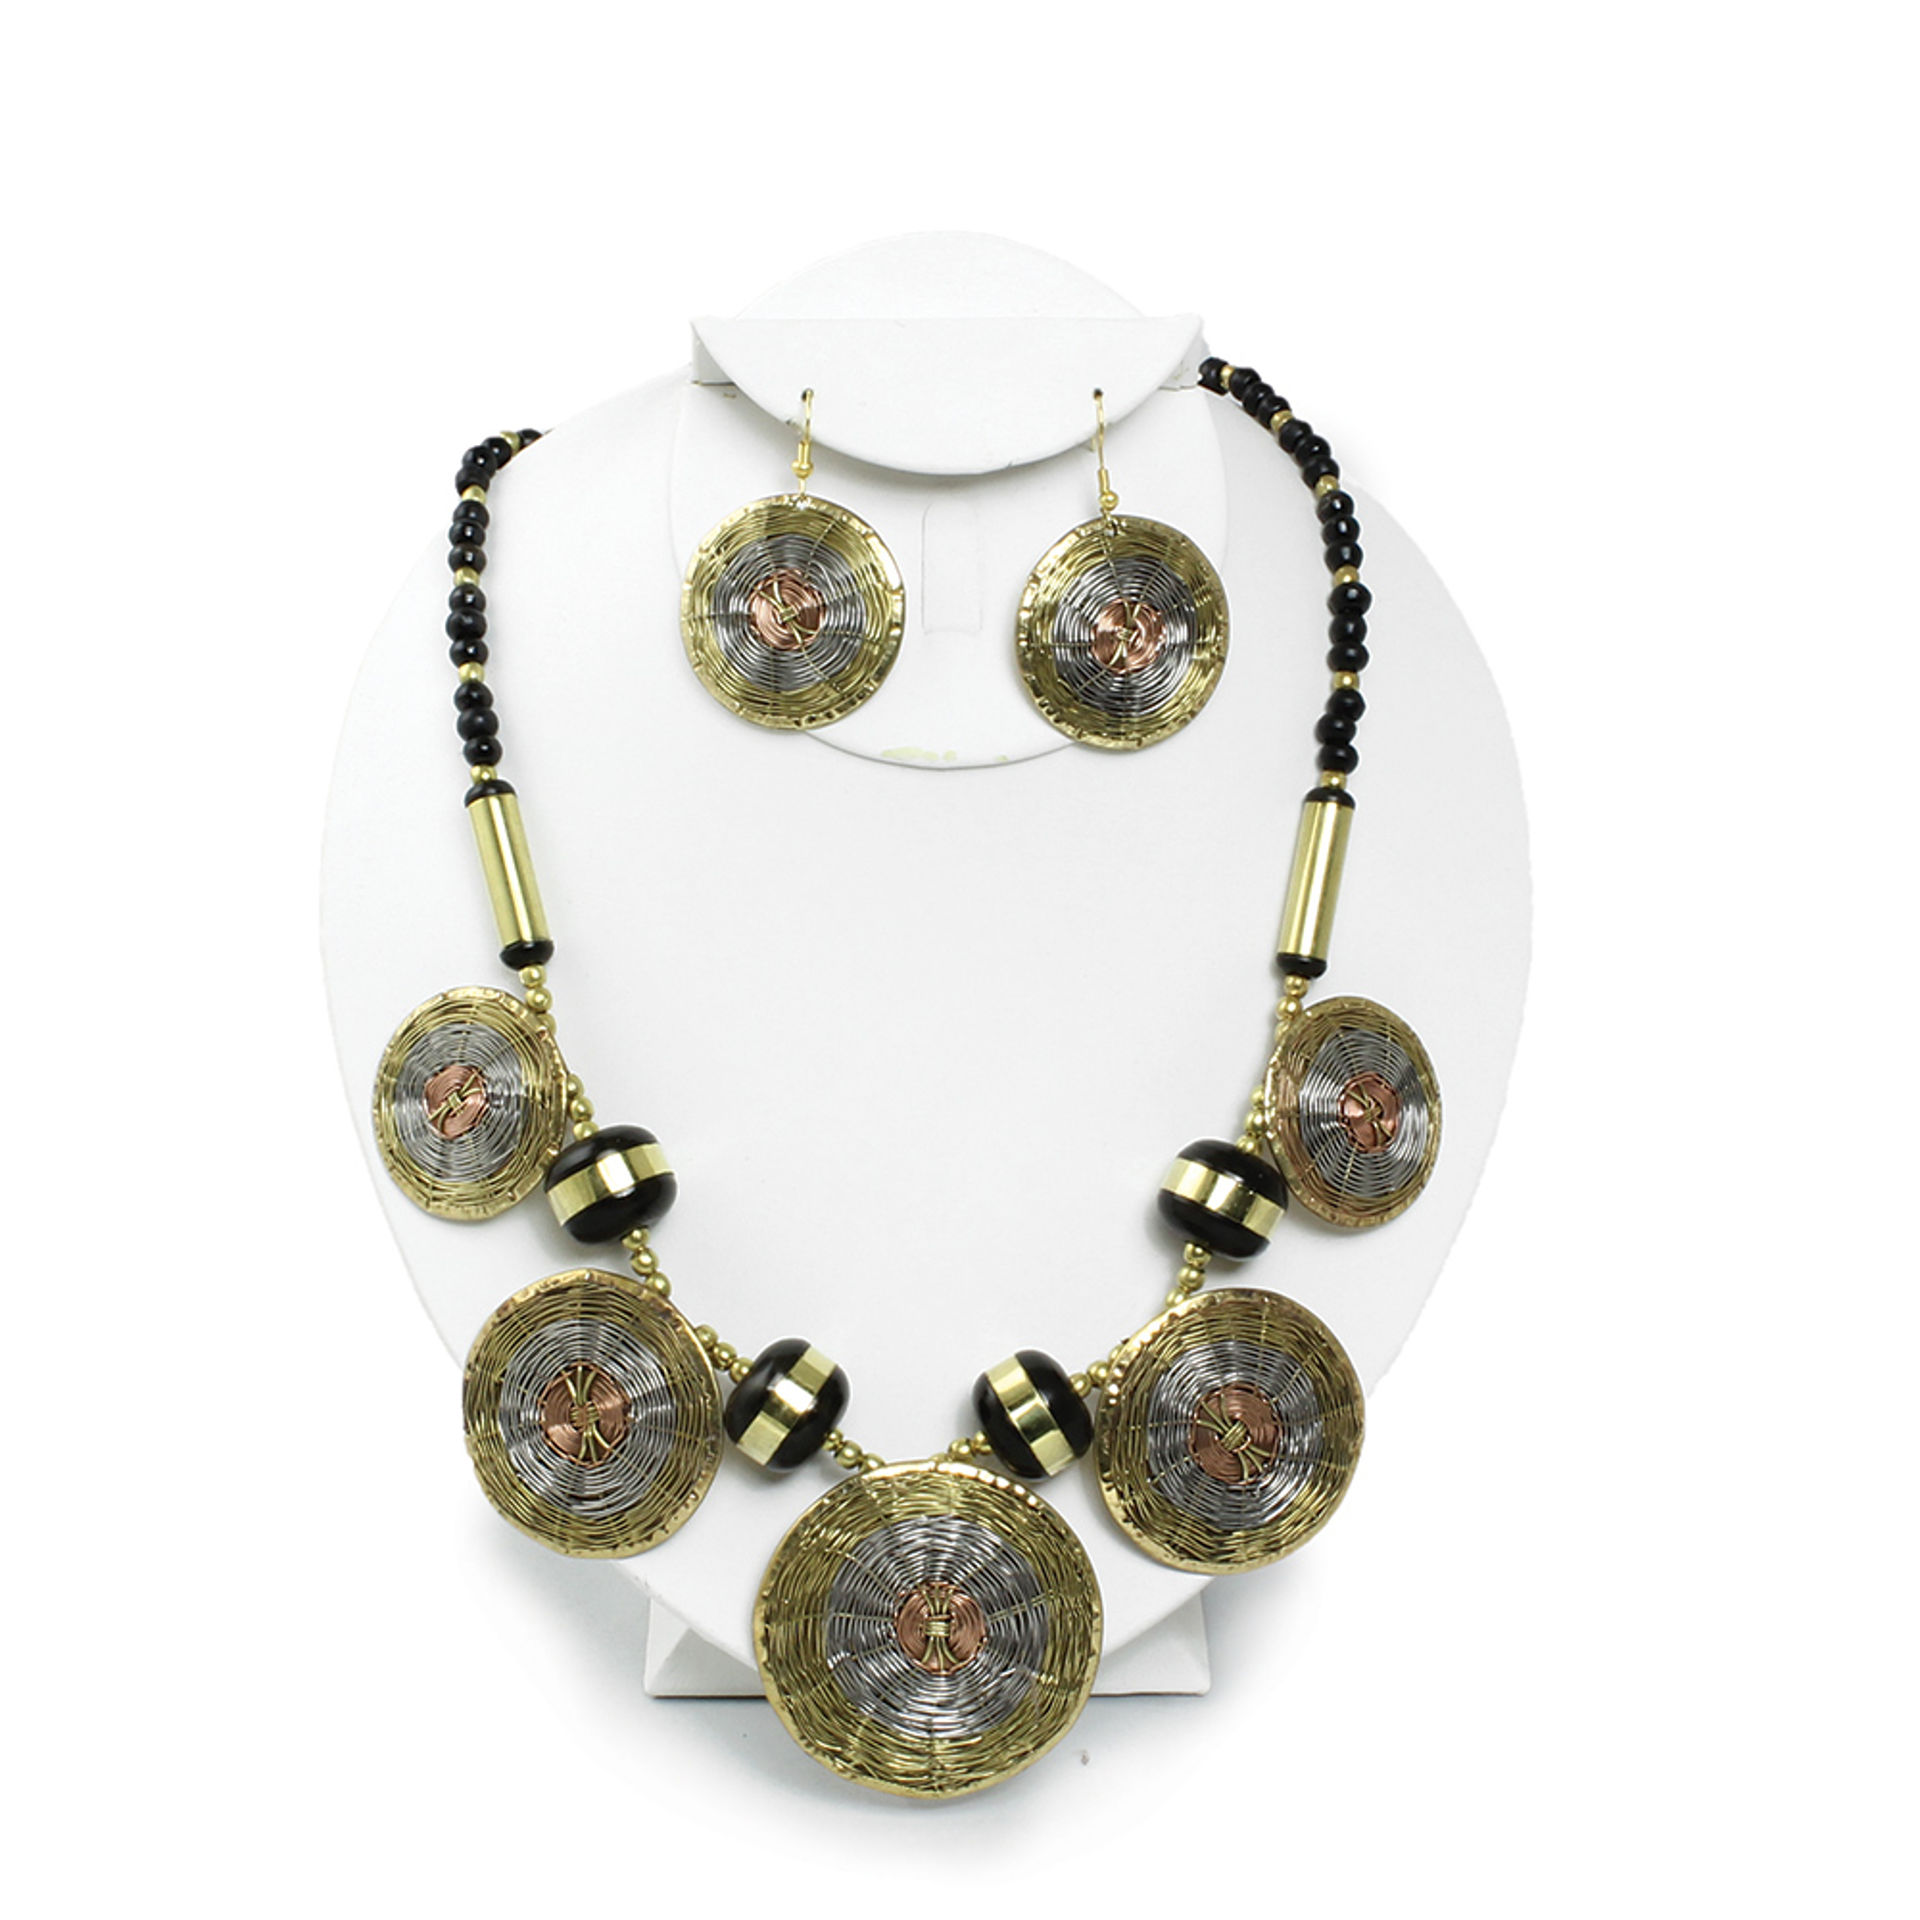 Picture of Woven Brass Necklace & Earrings Set